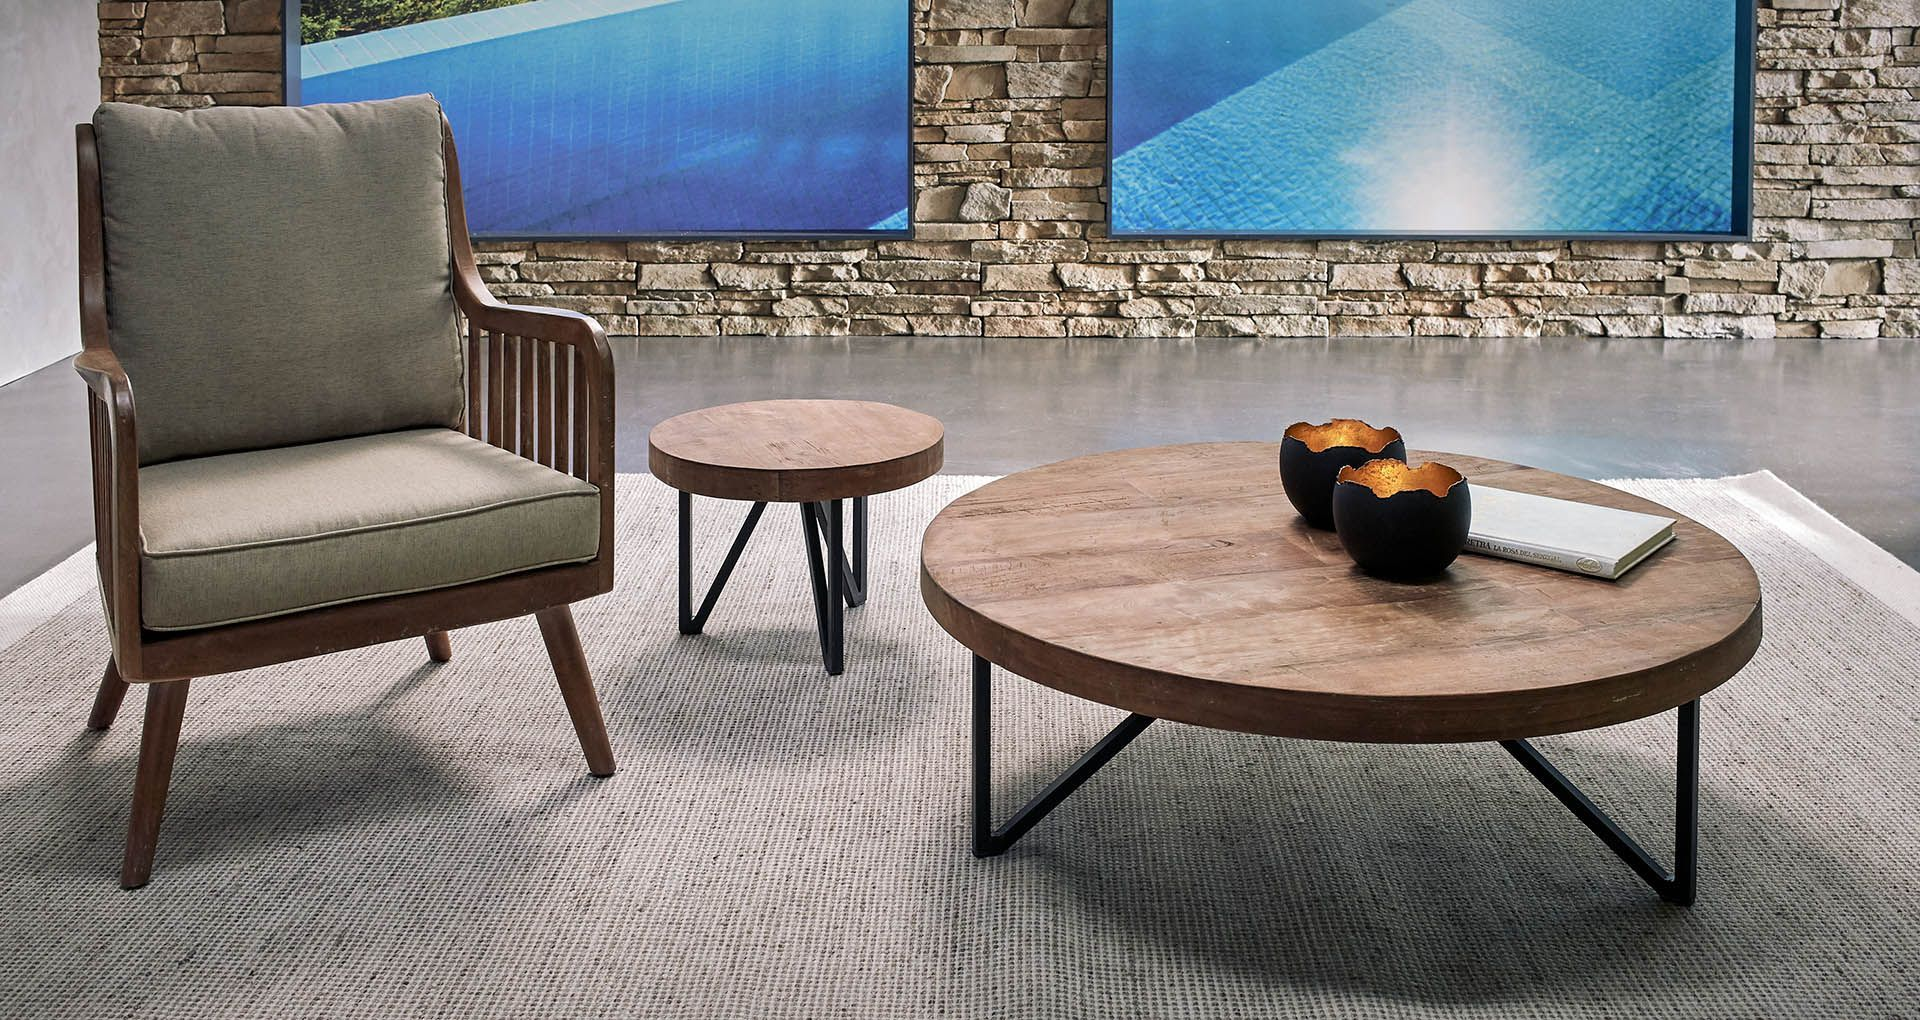 Soul Coffee Tables Products Nick Scali Furniture Coffee Table Table Coffee Table Dimensions [ 1020 x 1920 Pixel ]